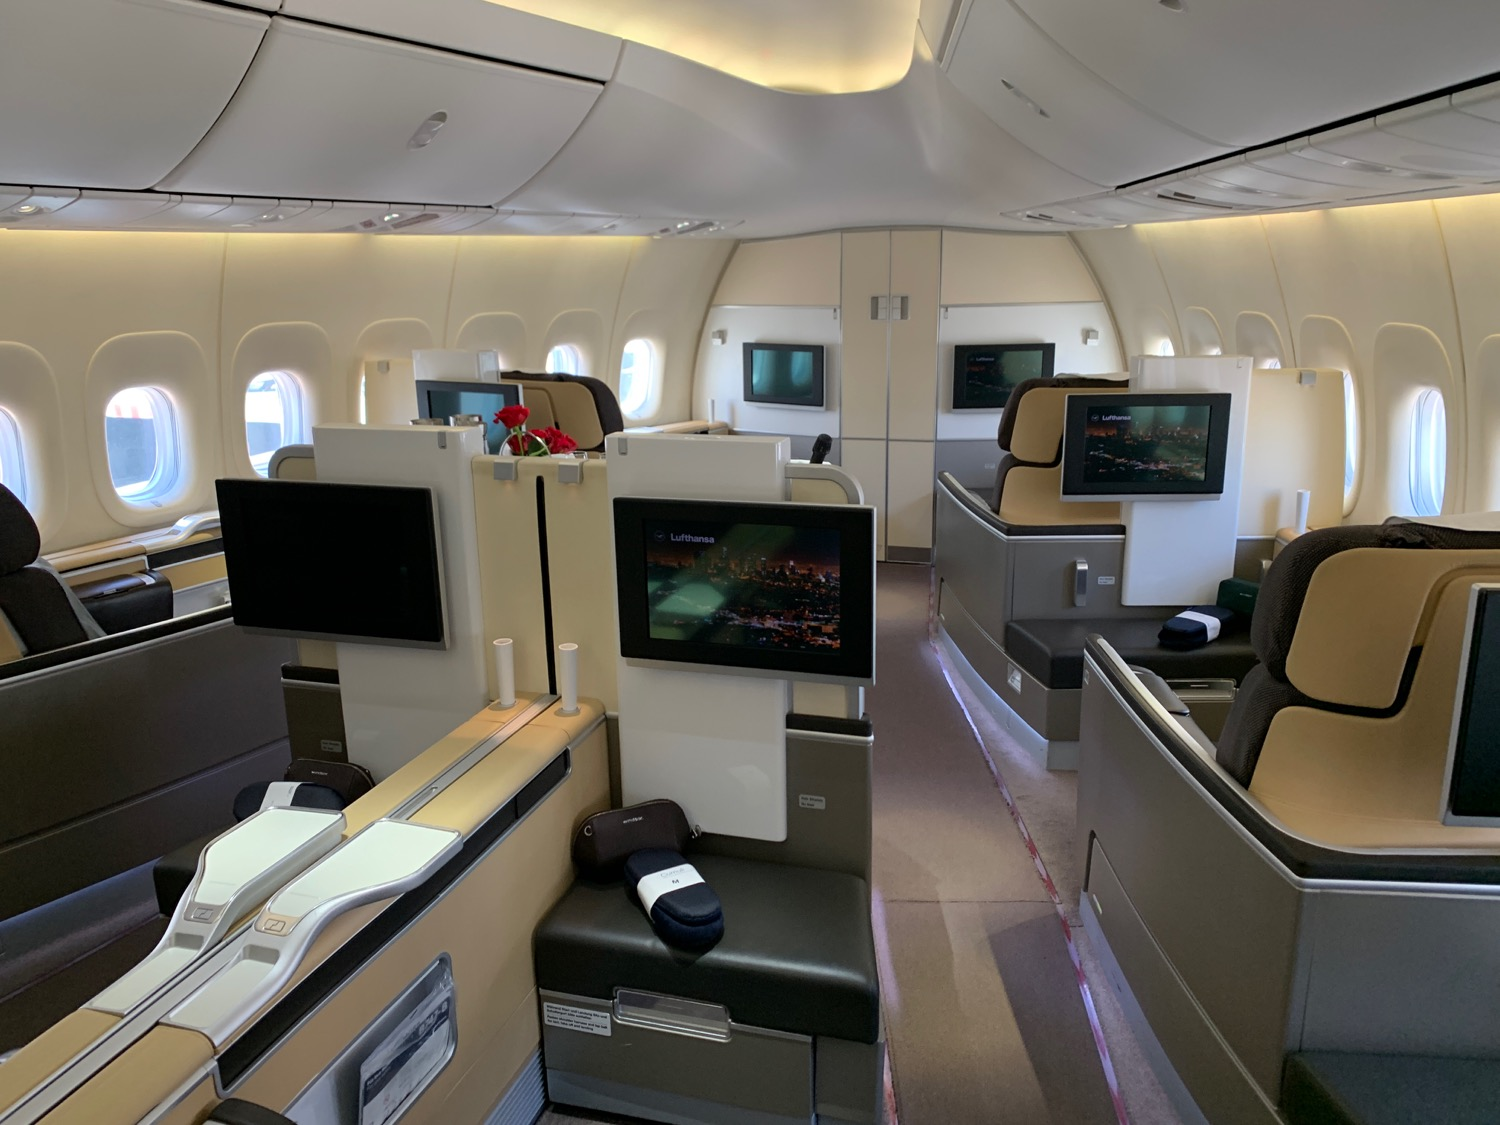 Big Problems Booking First Class Awards With United Airlines